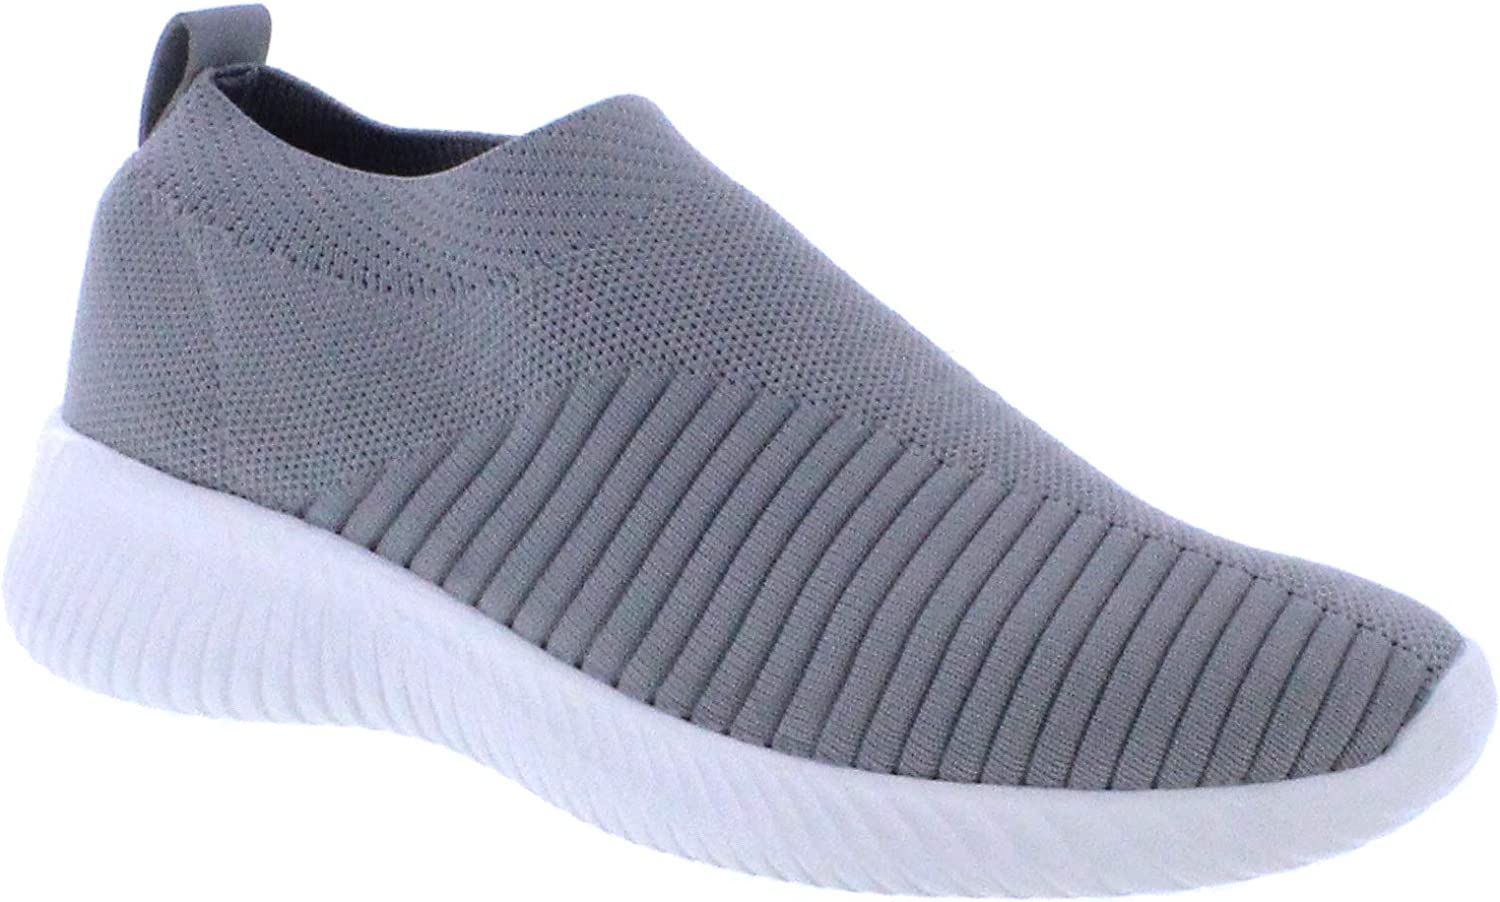 Womens Running shoes Fashion Sneakers Mesh Lightweight Breathable Casual Walking shoes (7, Grey)